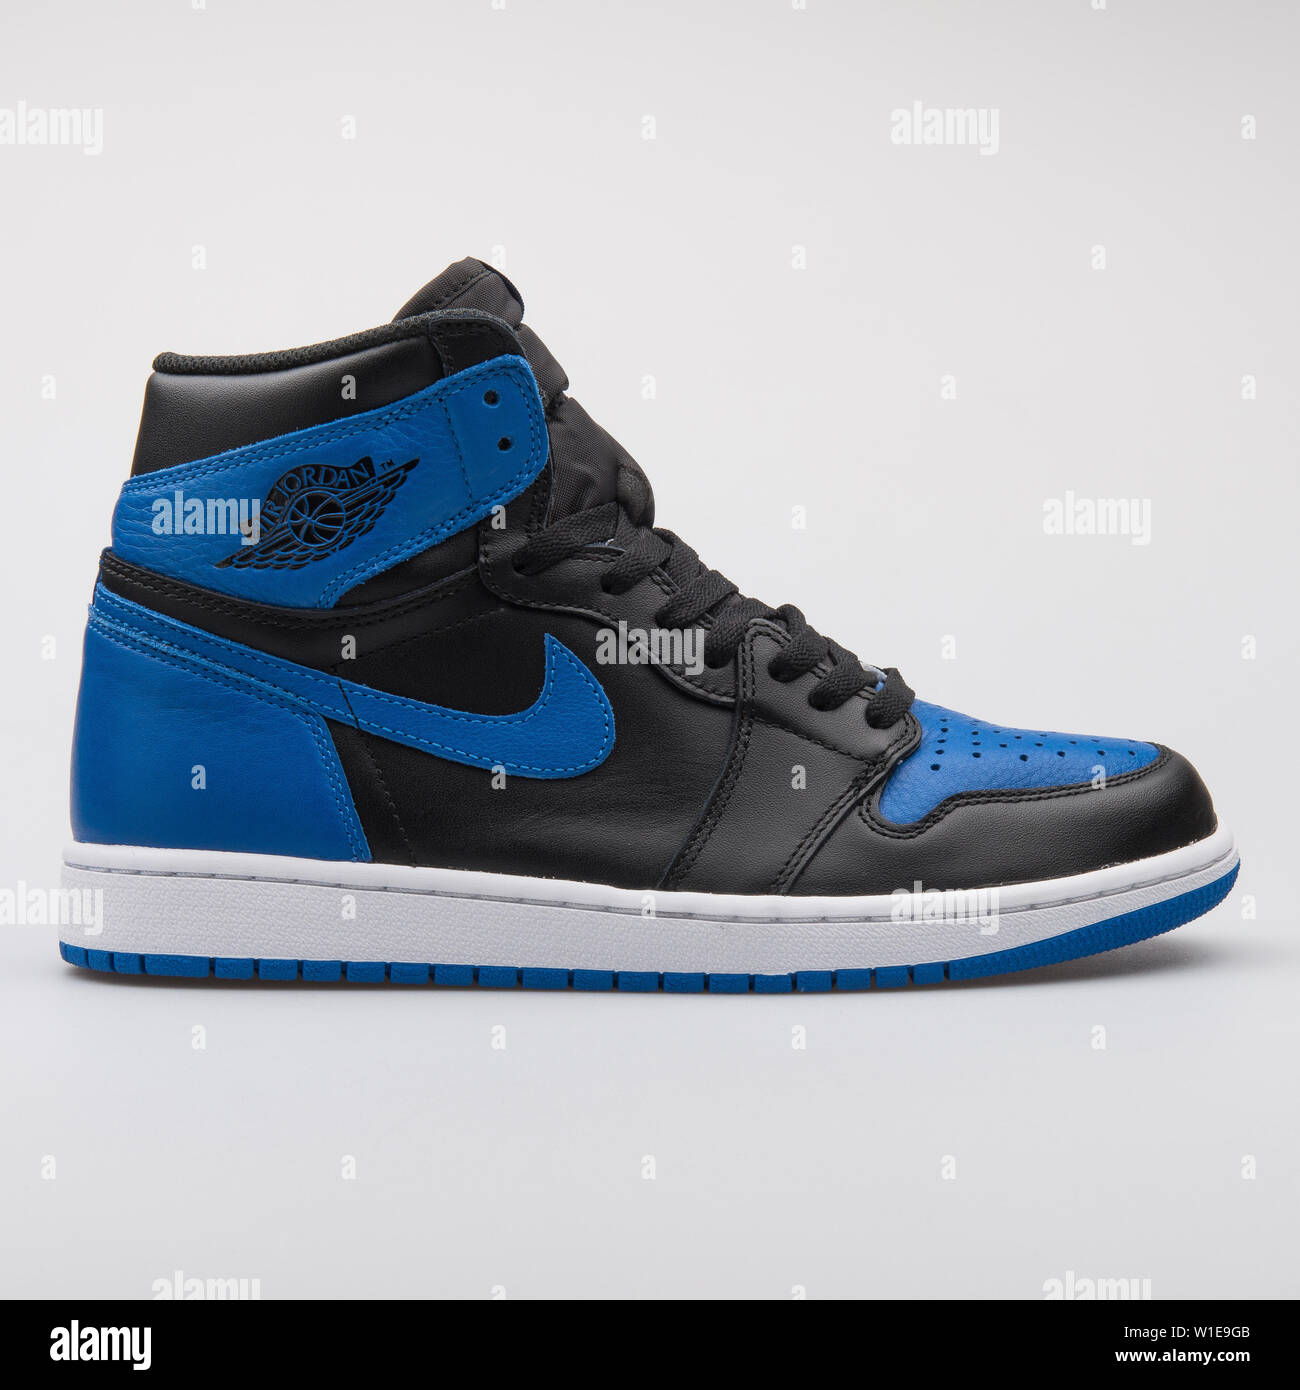 Download Jordan Scarpe Sfondi